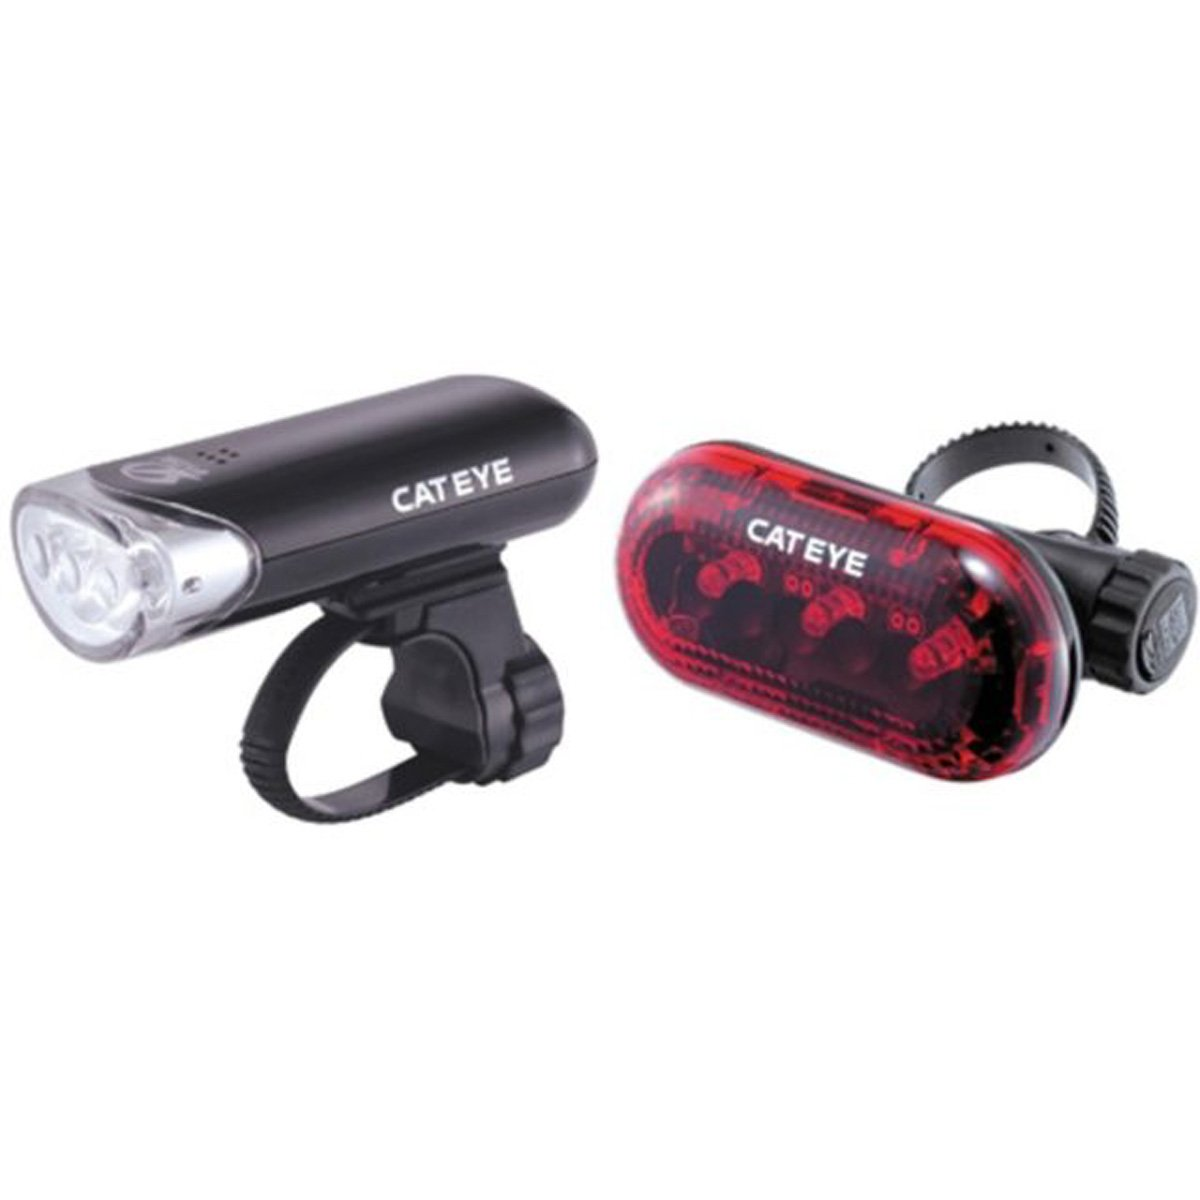 superdream Waterproof Rear Bike Light USB Rechargeable, LED Bicycle Tail Light for Cycling Safety Flashlight